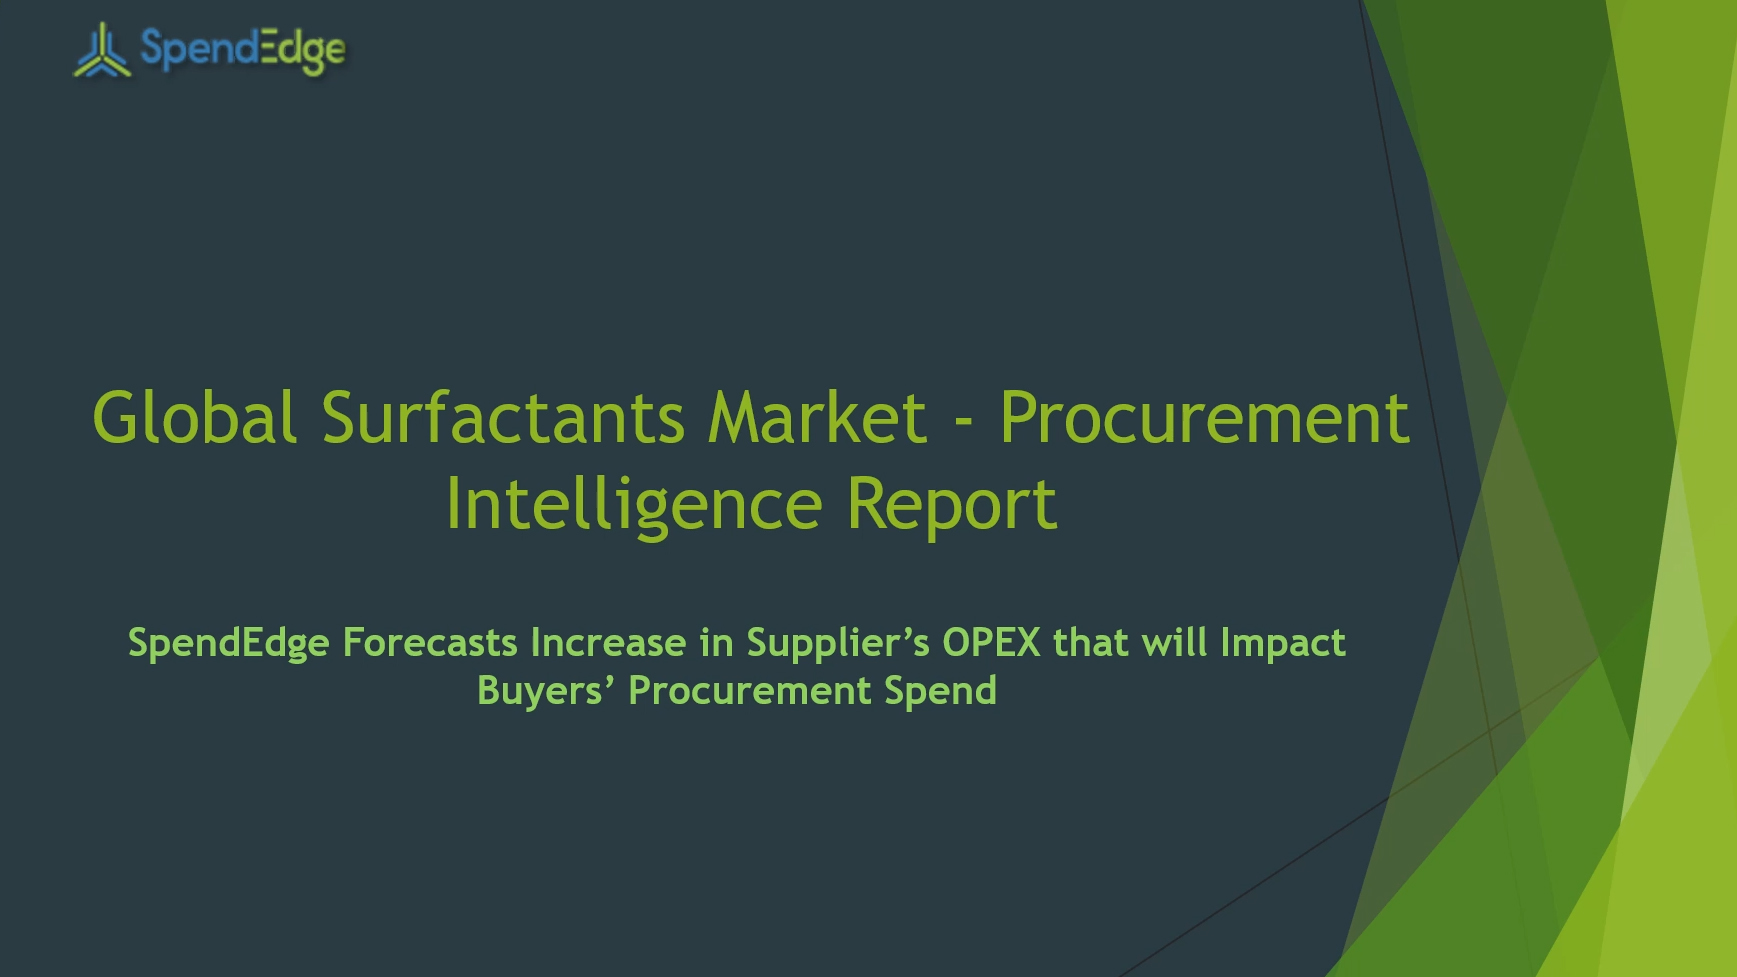 SpendEdge, a global procurement market intelligence firm, has announced the release of its Global Surfactants Market - Procurement Intelligence Report.